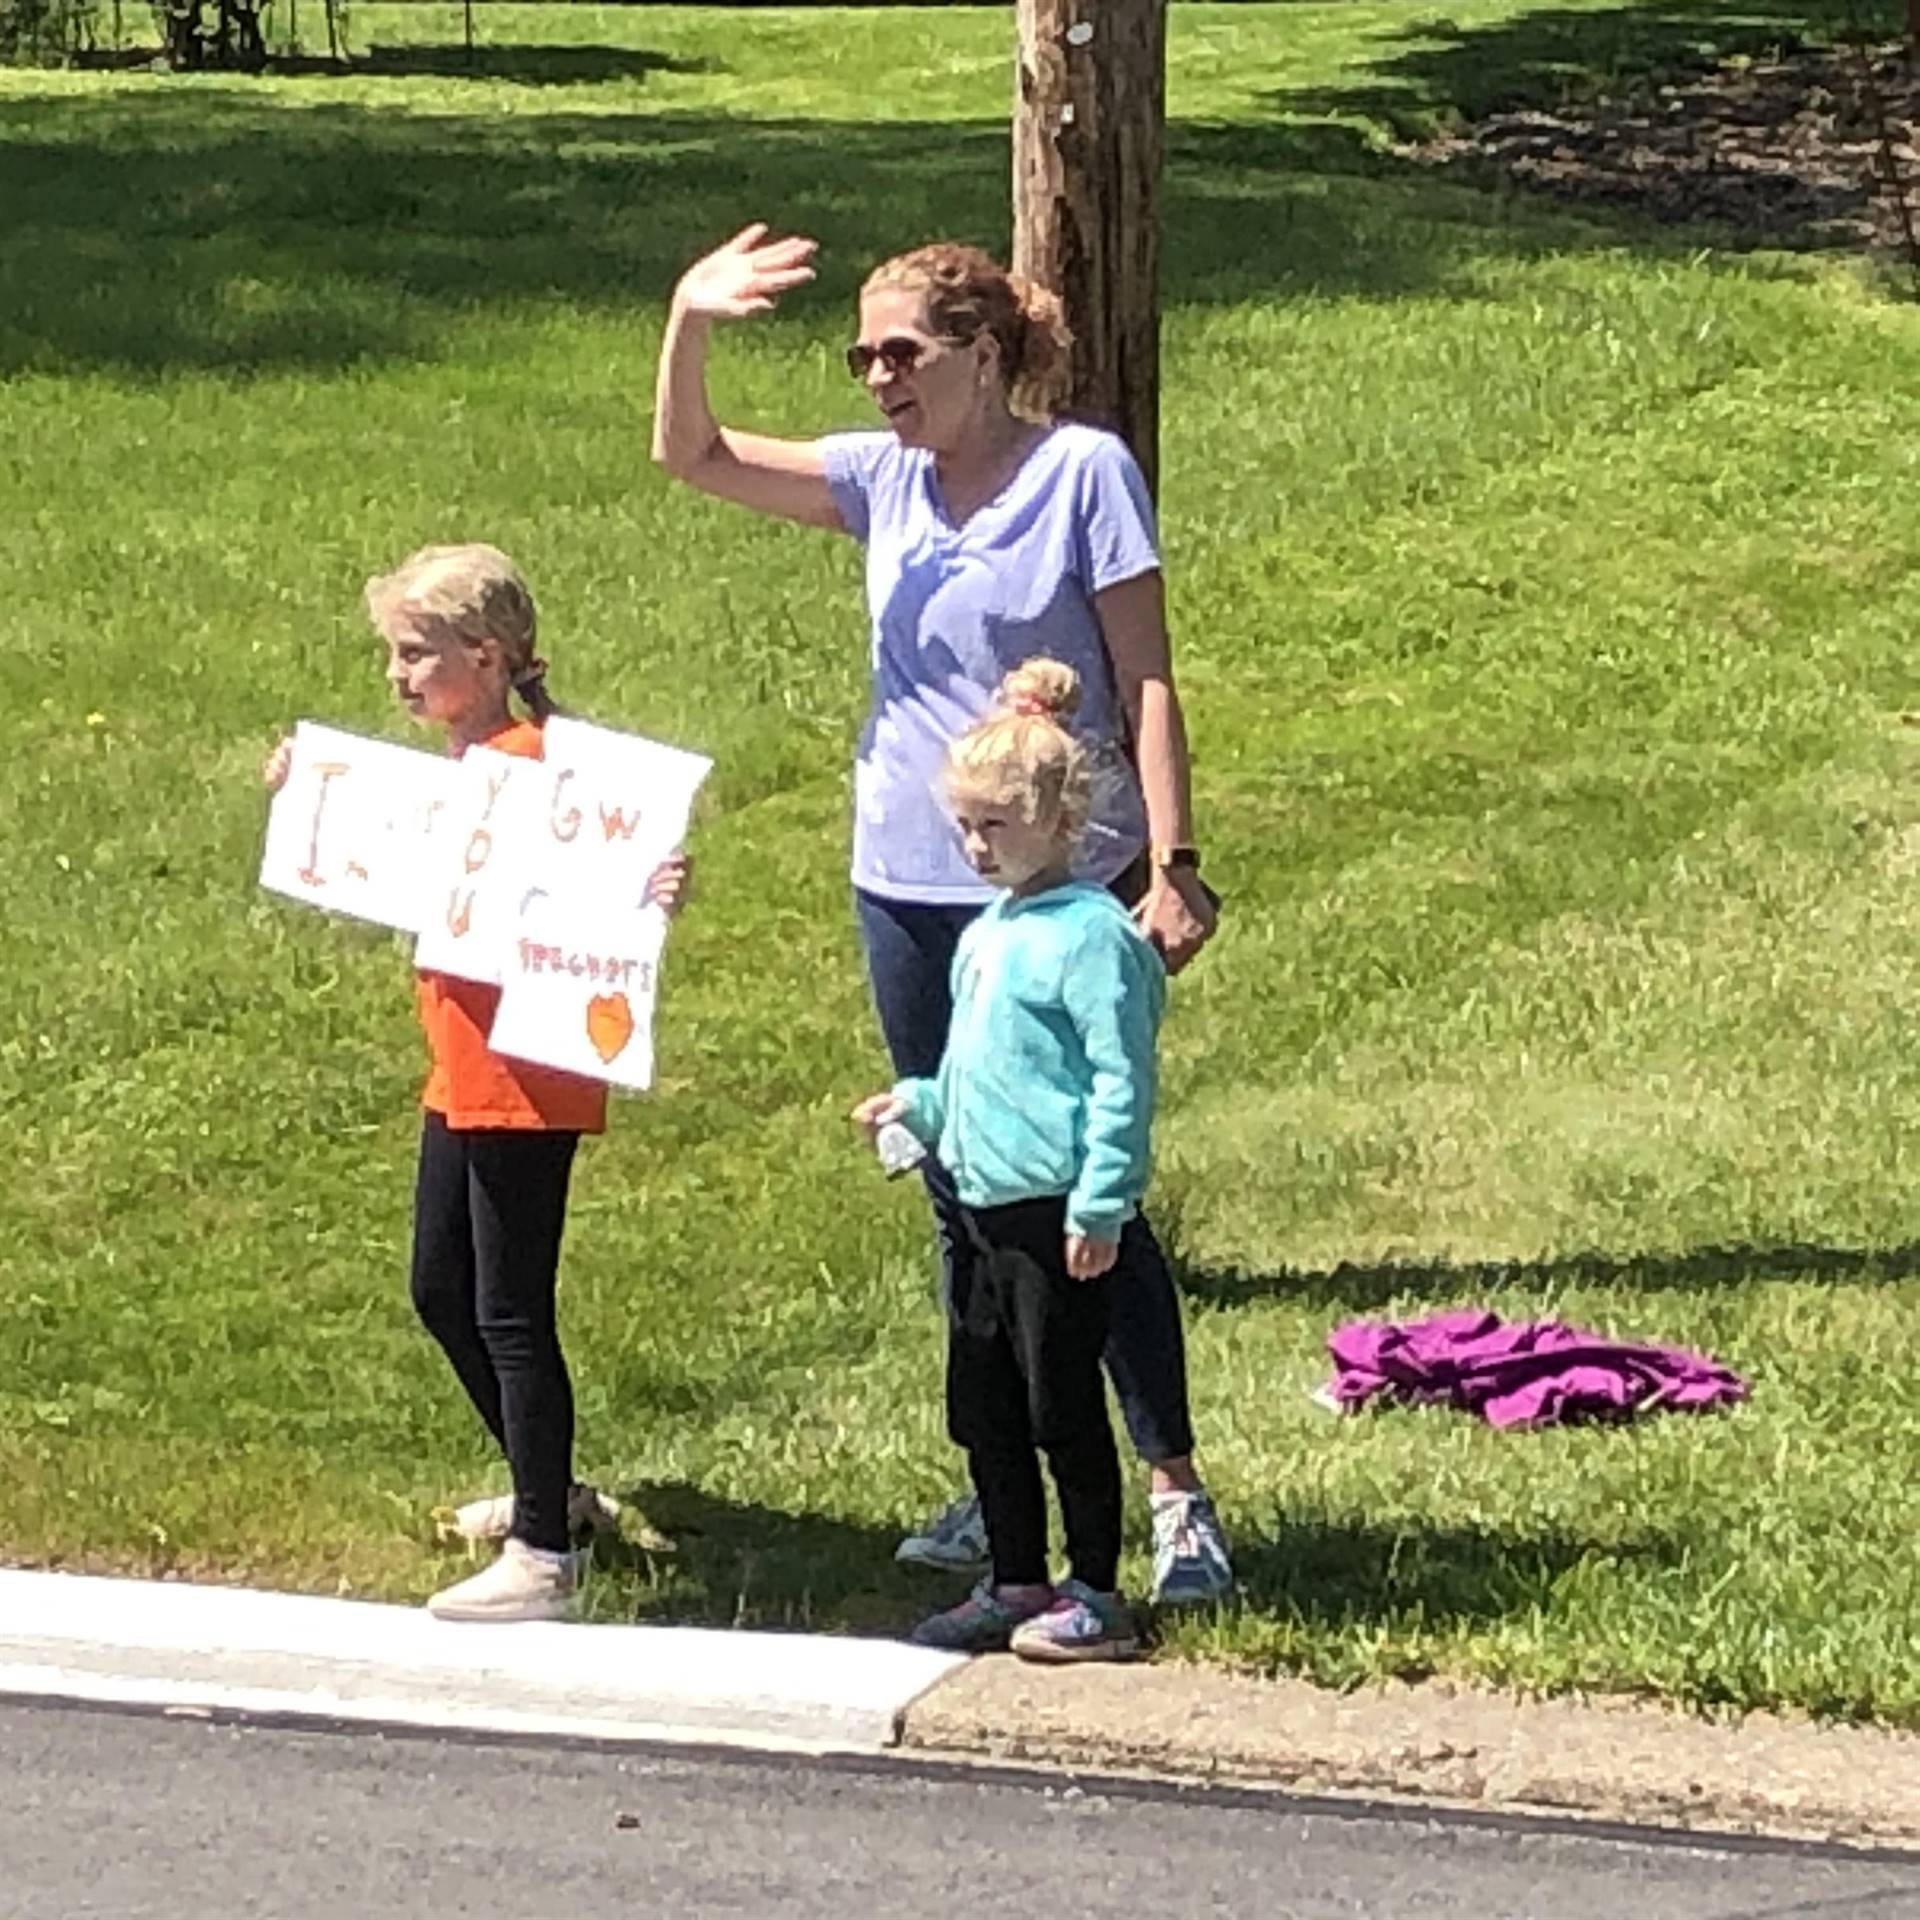 Two students and a parent waving